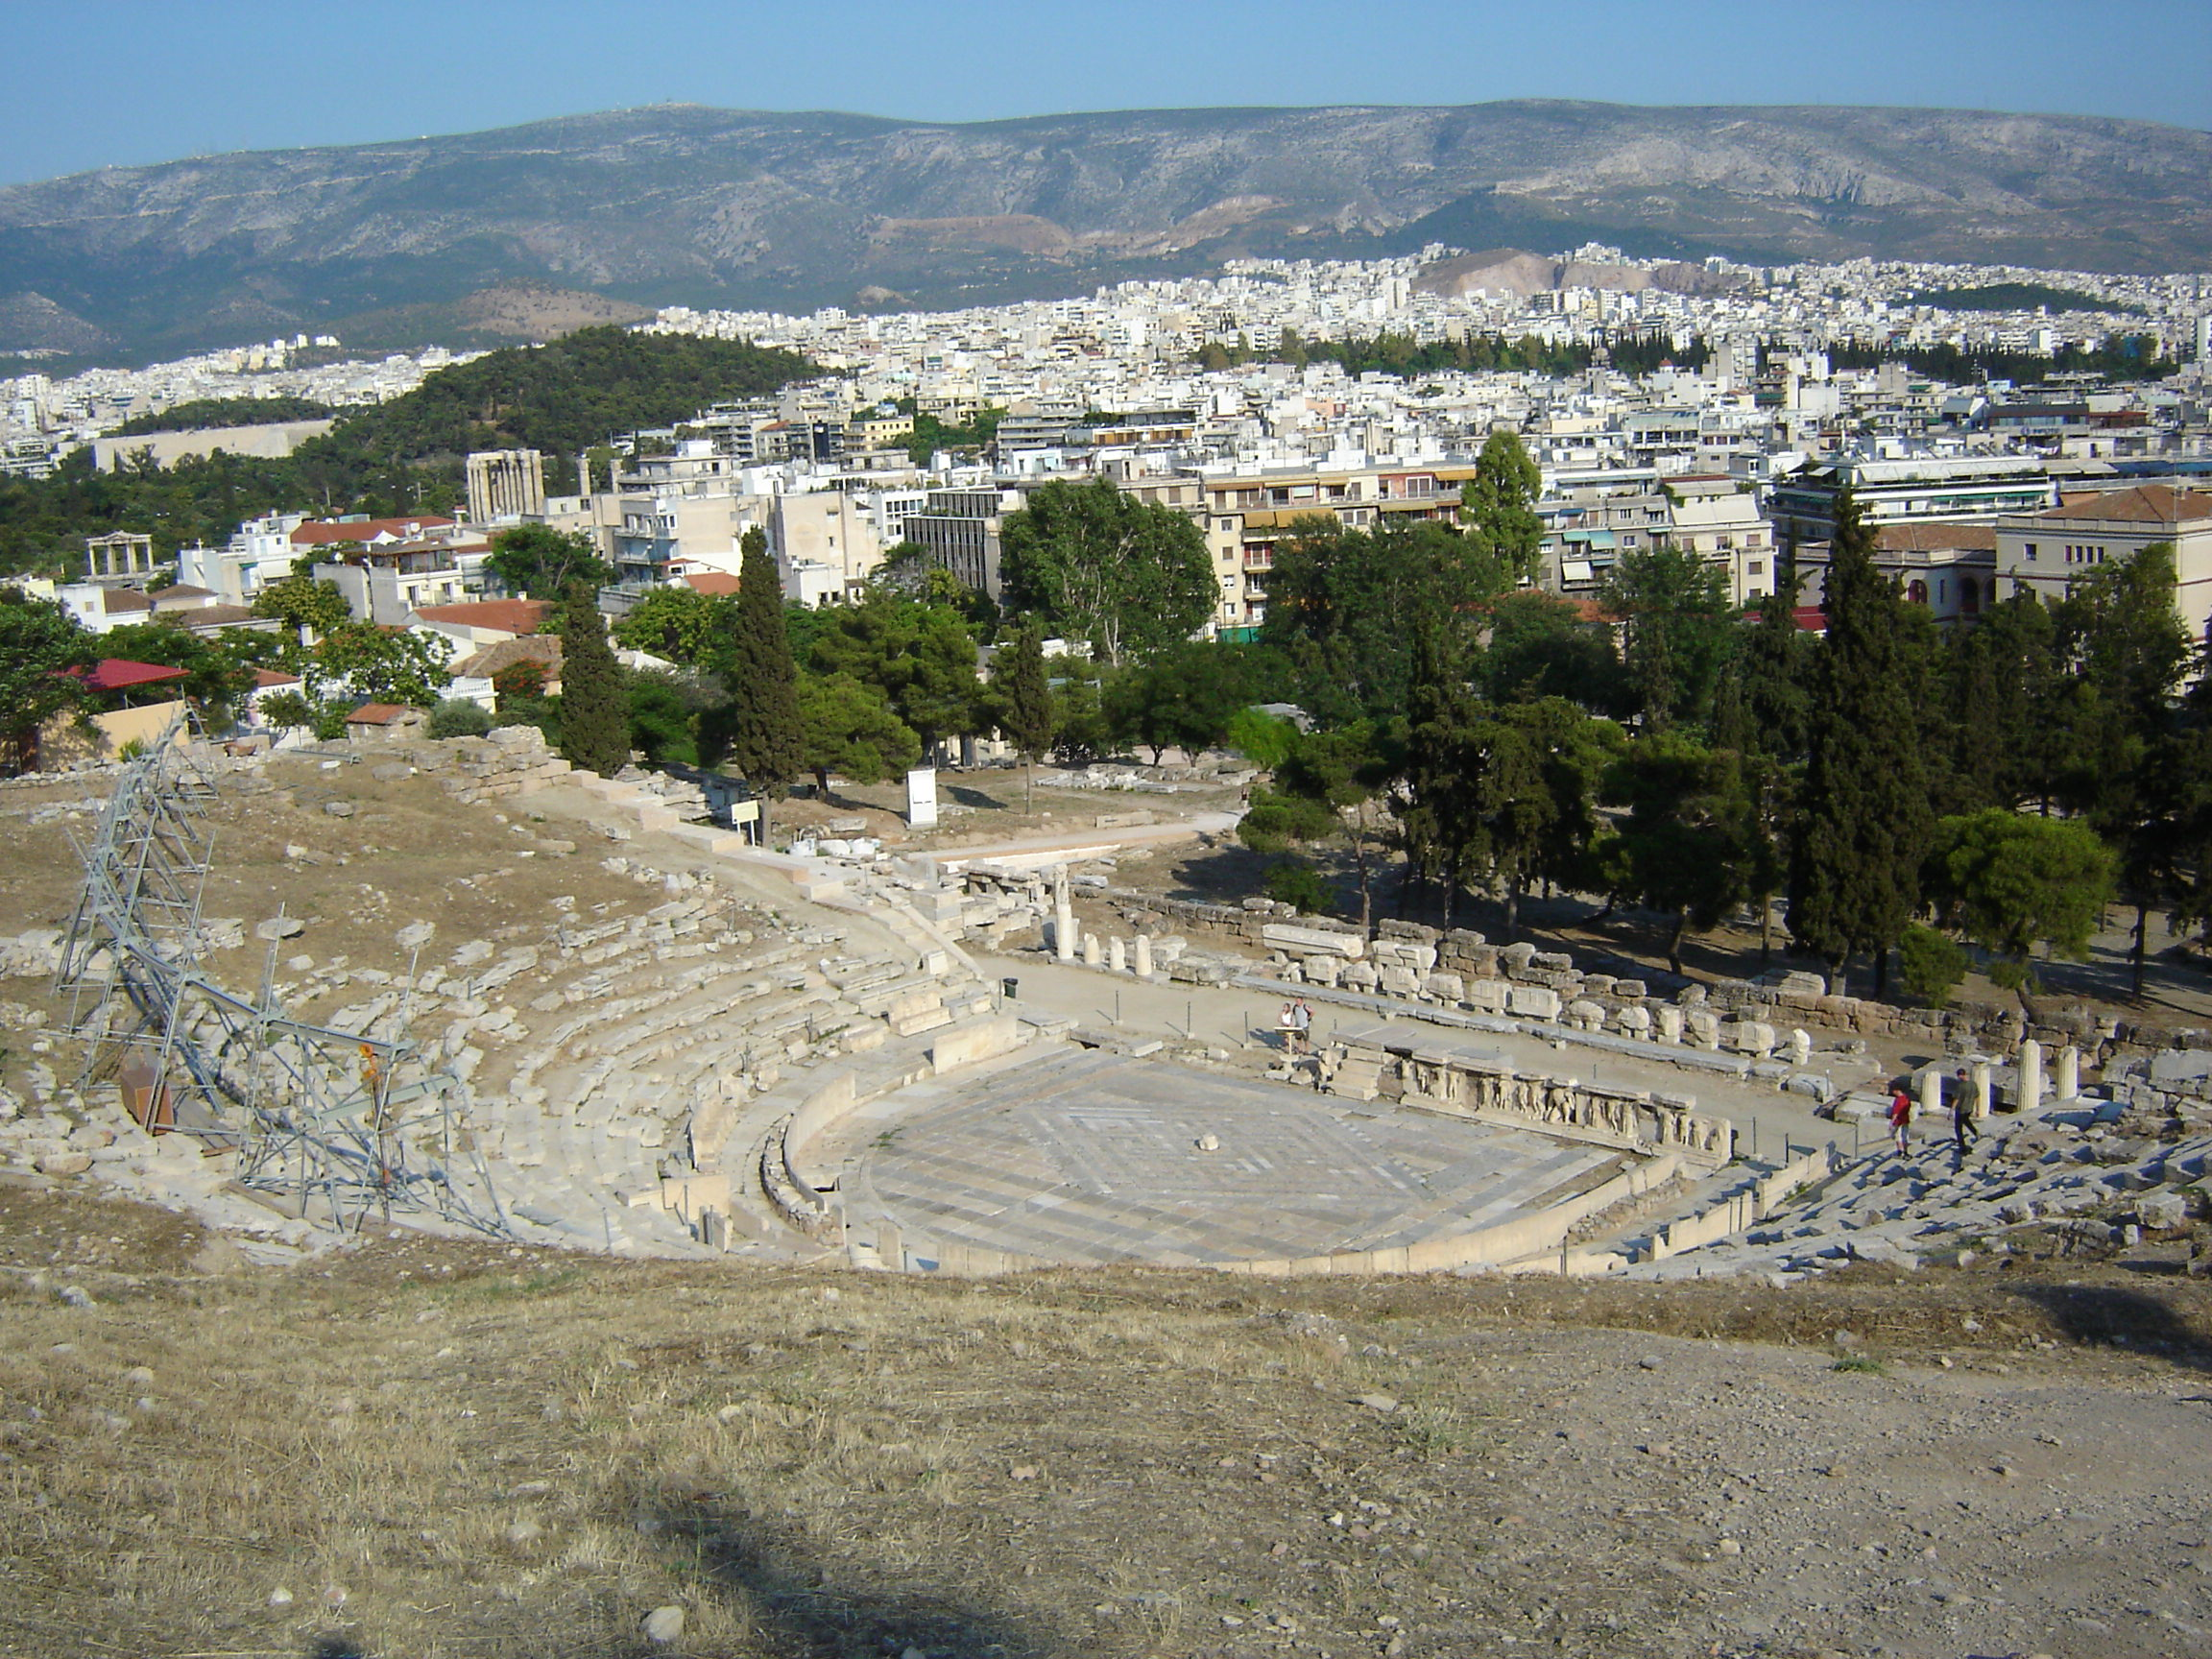 artful first theater production performed in athens in 550 bc Start studying origins and ancient greek theatre learn performed 2500-550 bce with founded the 1st public library of athens first written versions.